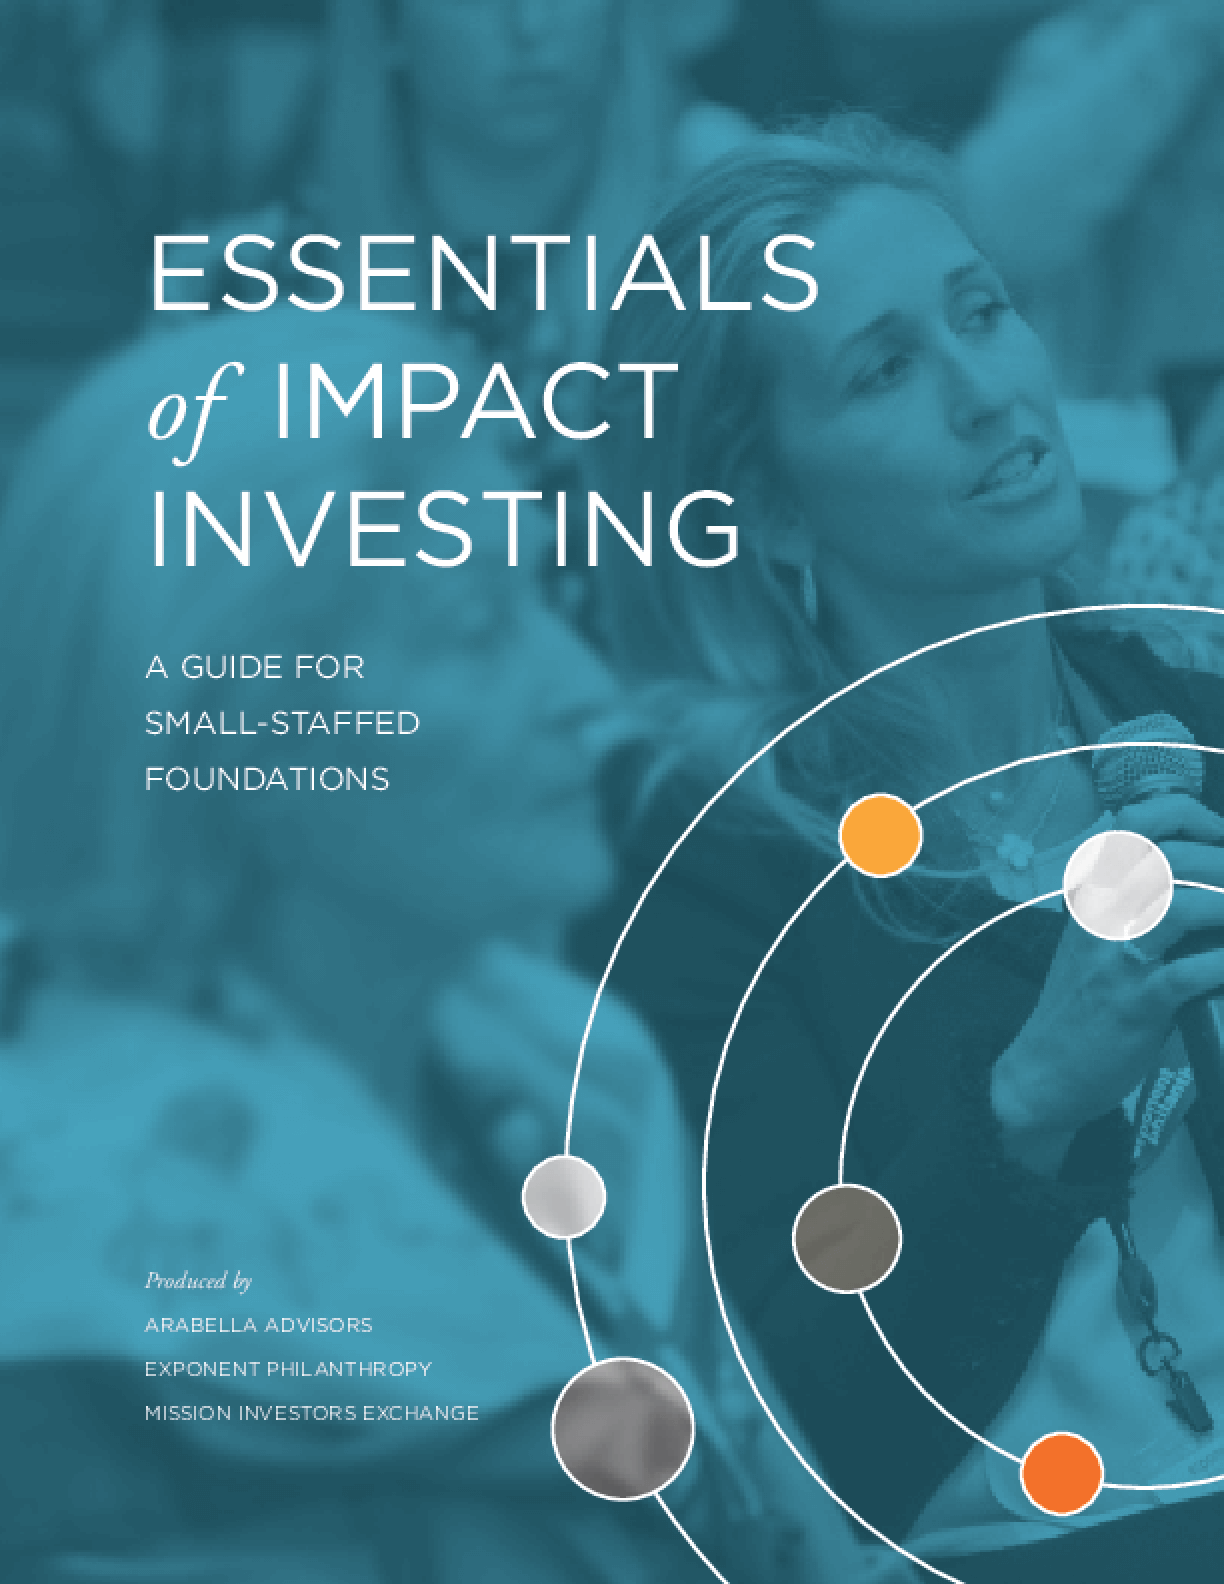 Essentials of Impact Investing: A Guide for Small-Staffed Foundations